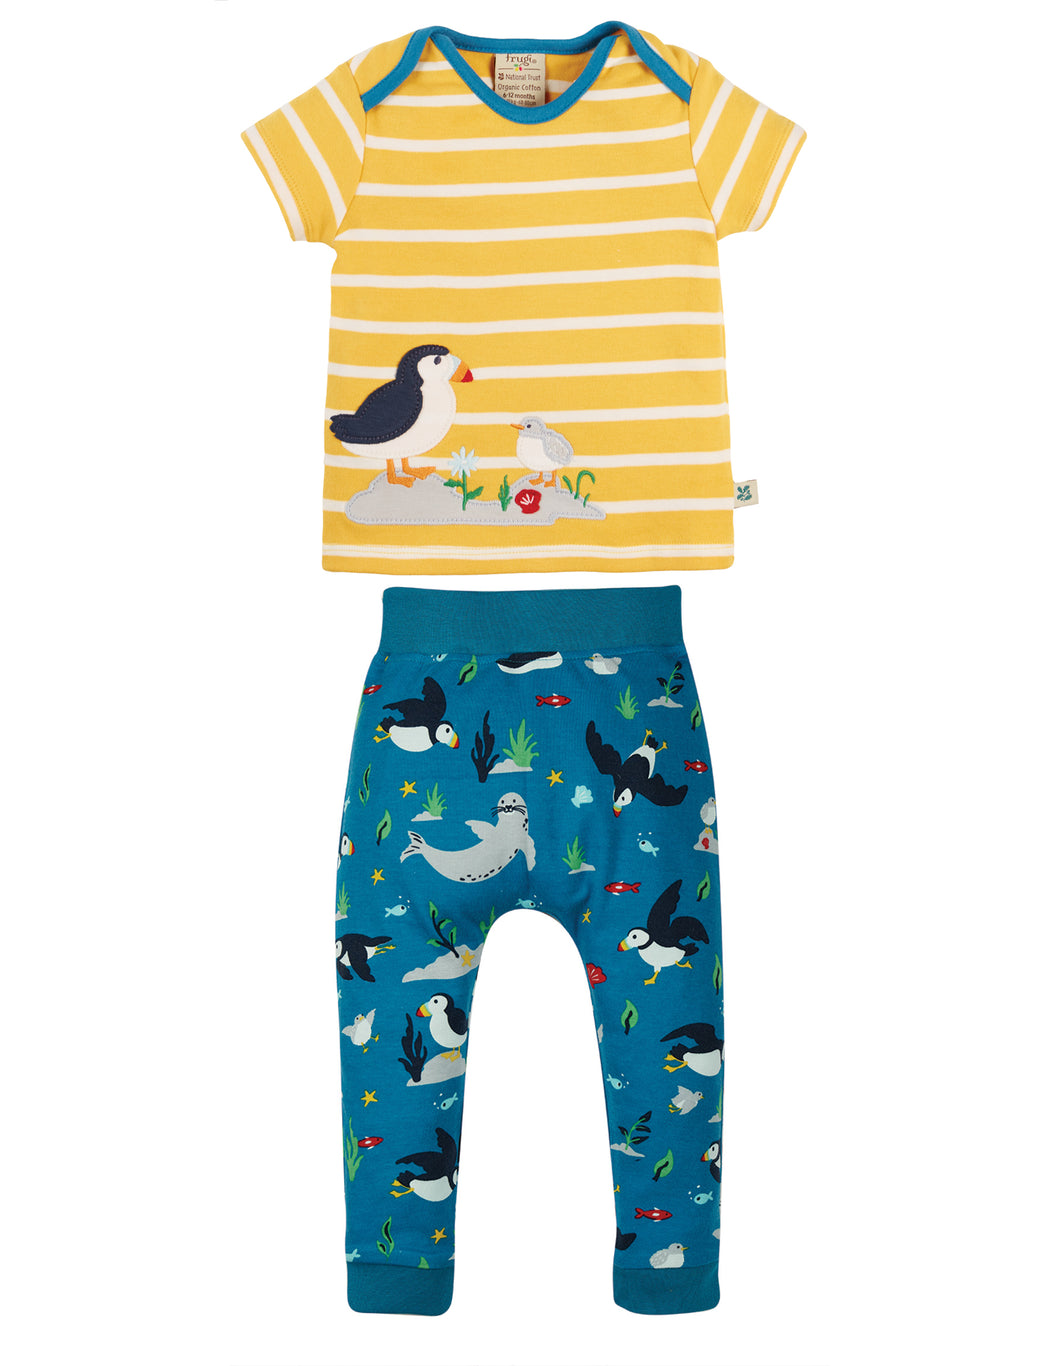 Frugi The National Trust Olly Outfit Puffin